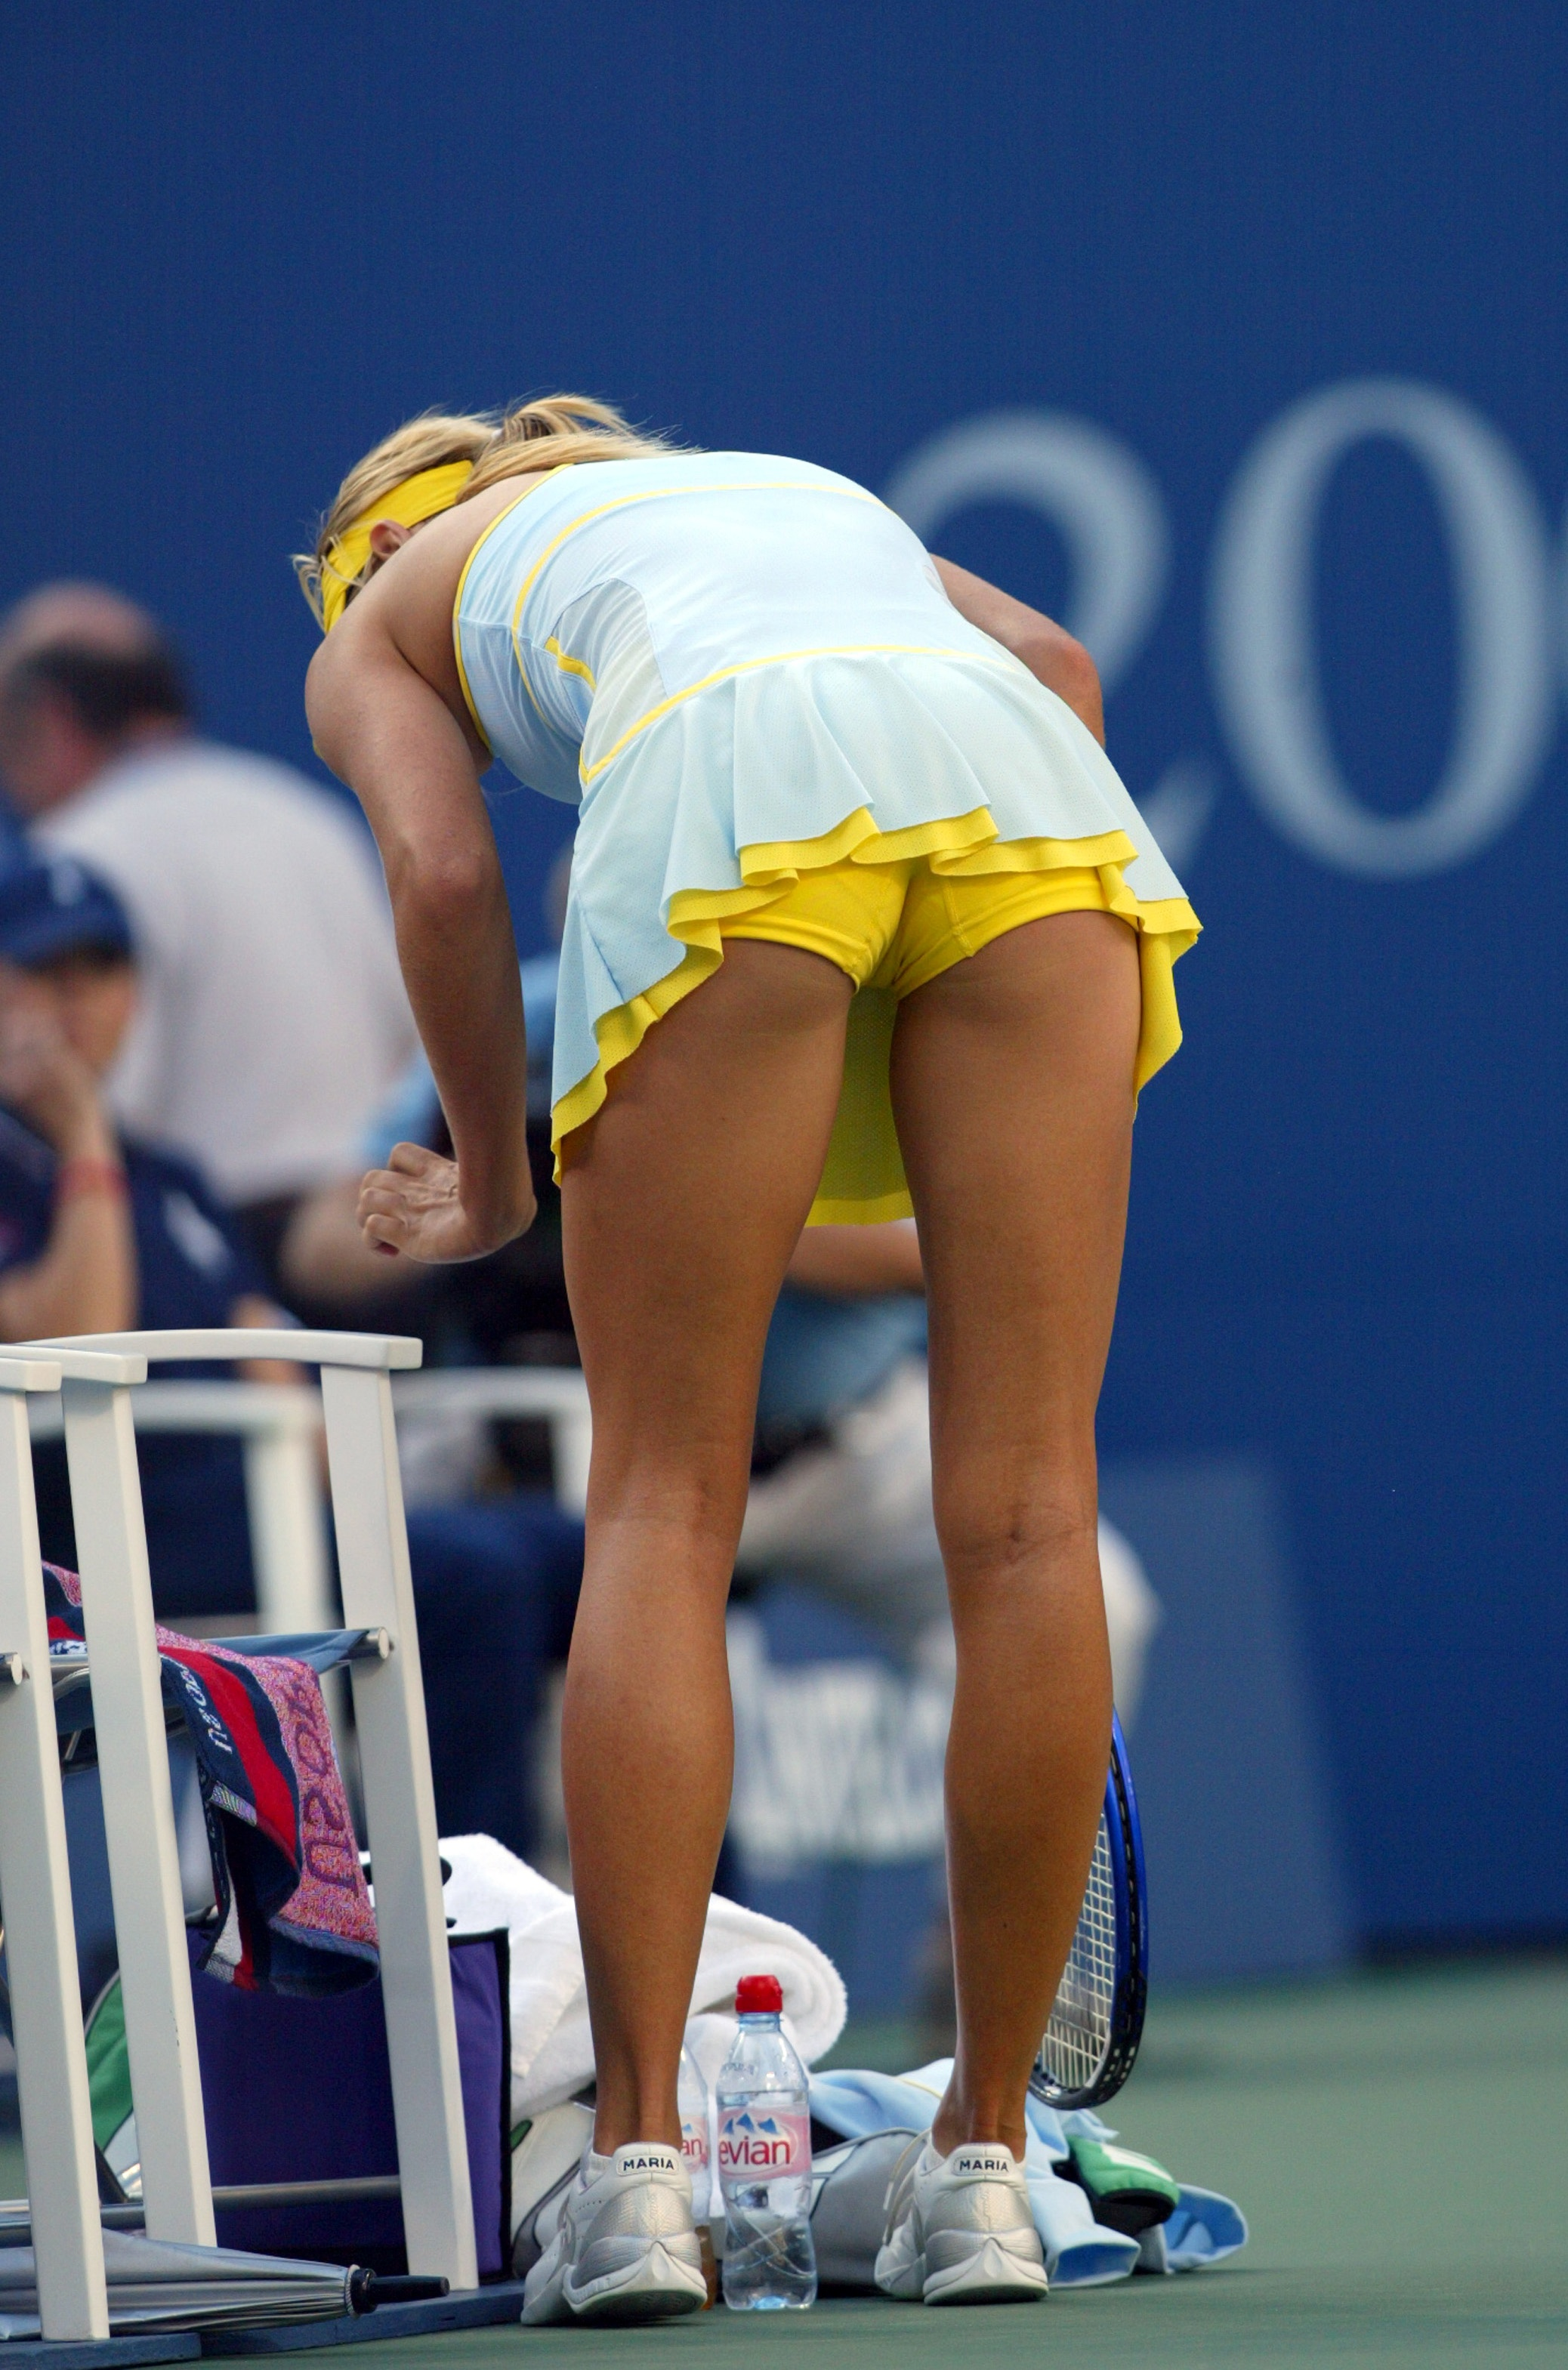 Maria photo sharapova upskirt